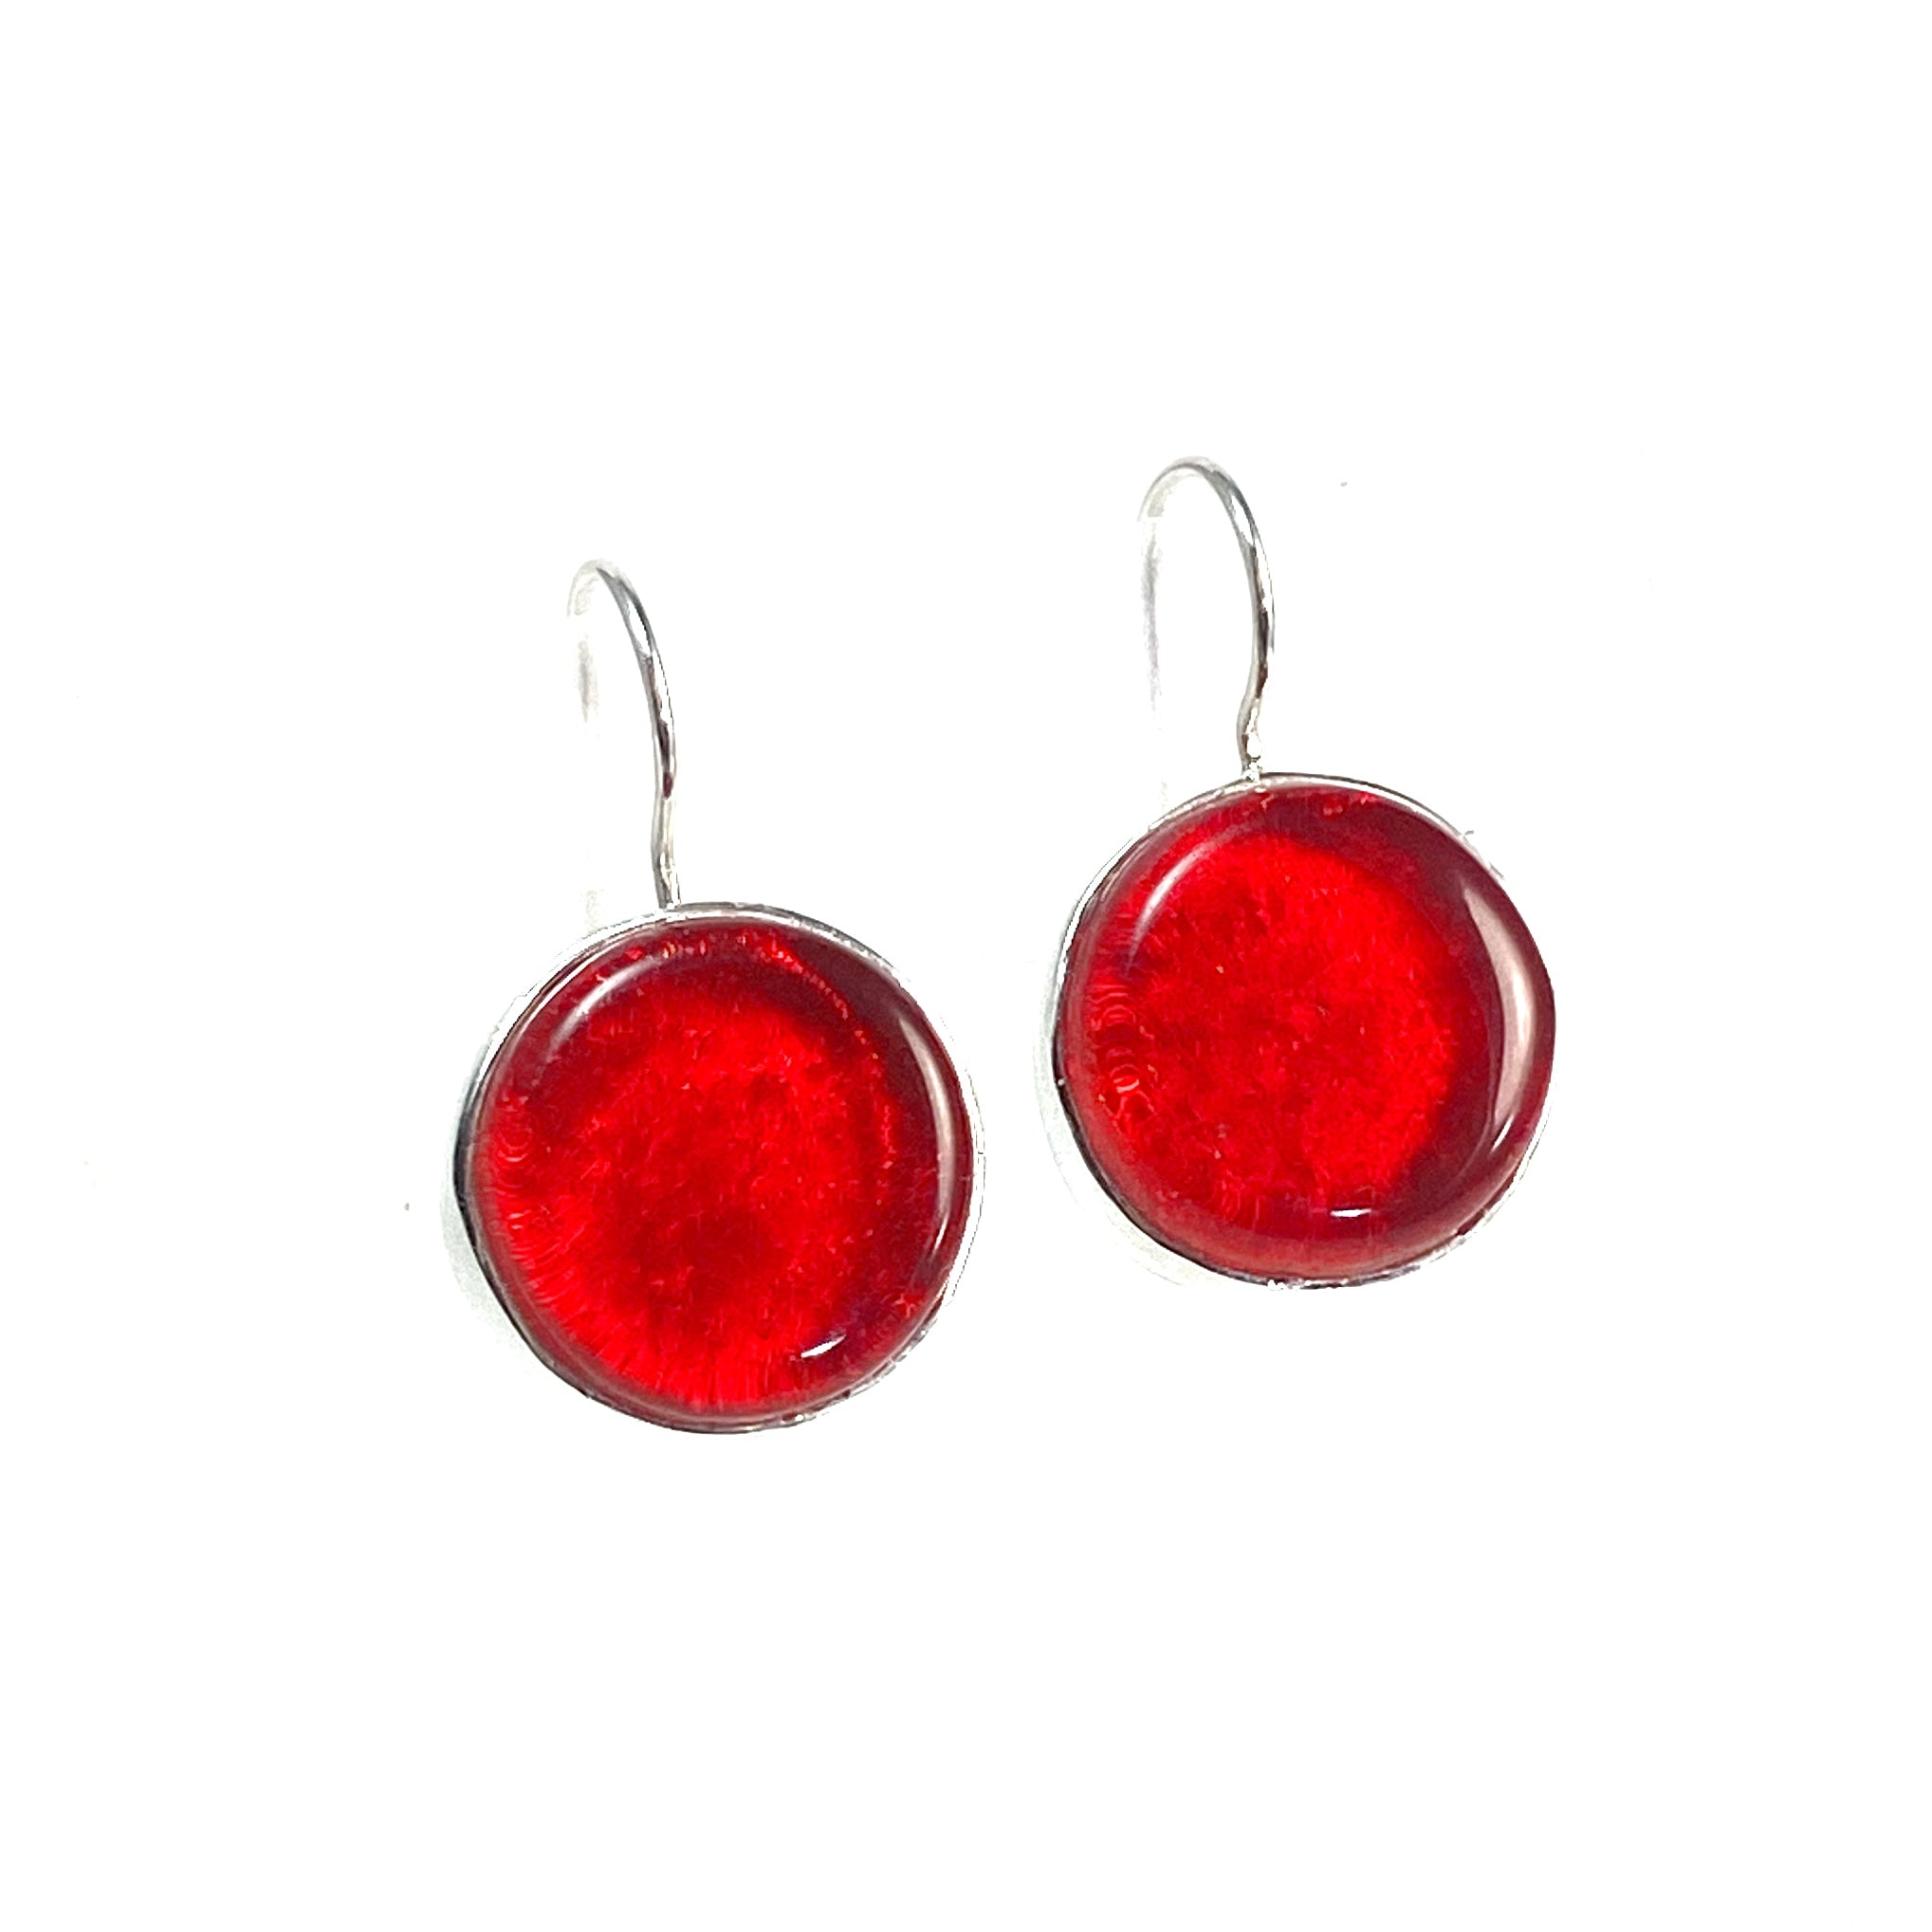 cherry red glass, circle earrings, fused glass, glass jewelry, glass and silver jewelry, handmade, handcrafted, American Craft, hand fabricated, Athen, Georgia, colorful jewelry, sparkle, bullseye glass, dichroic glass